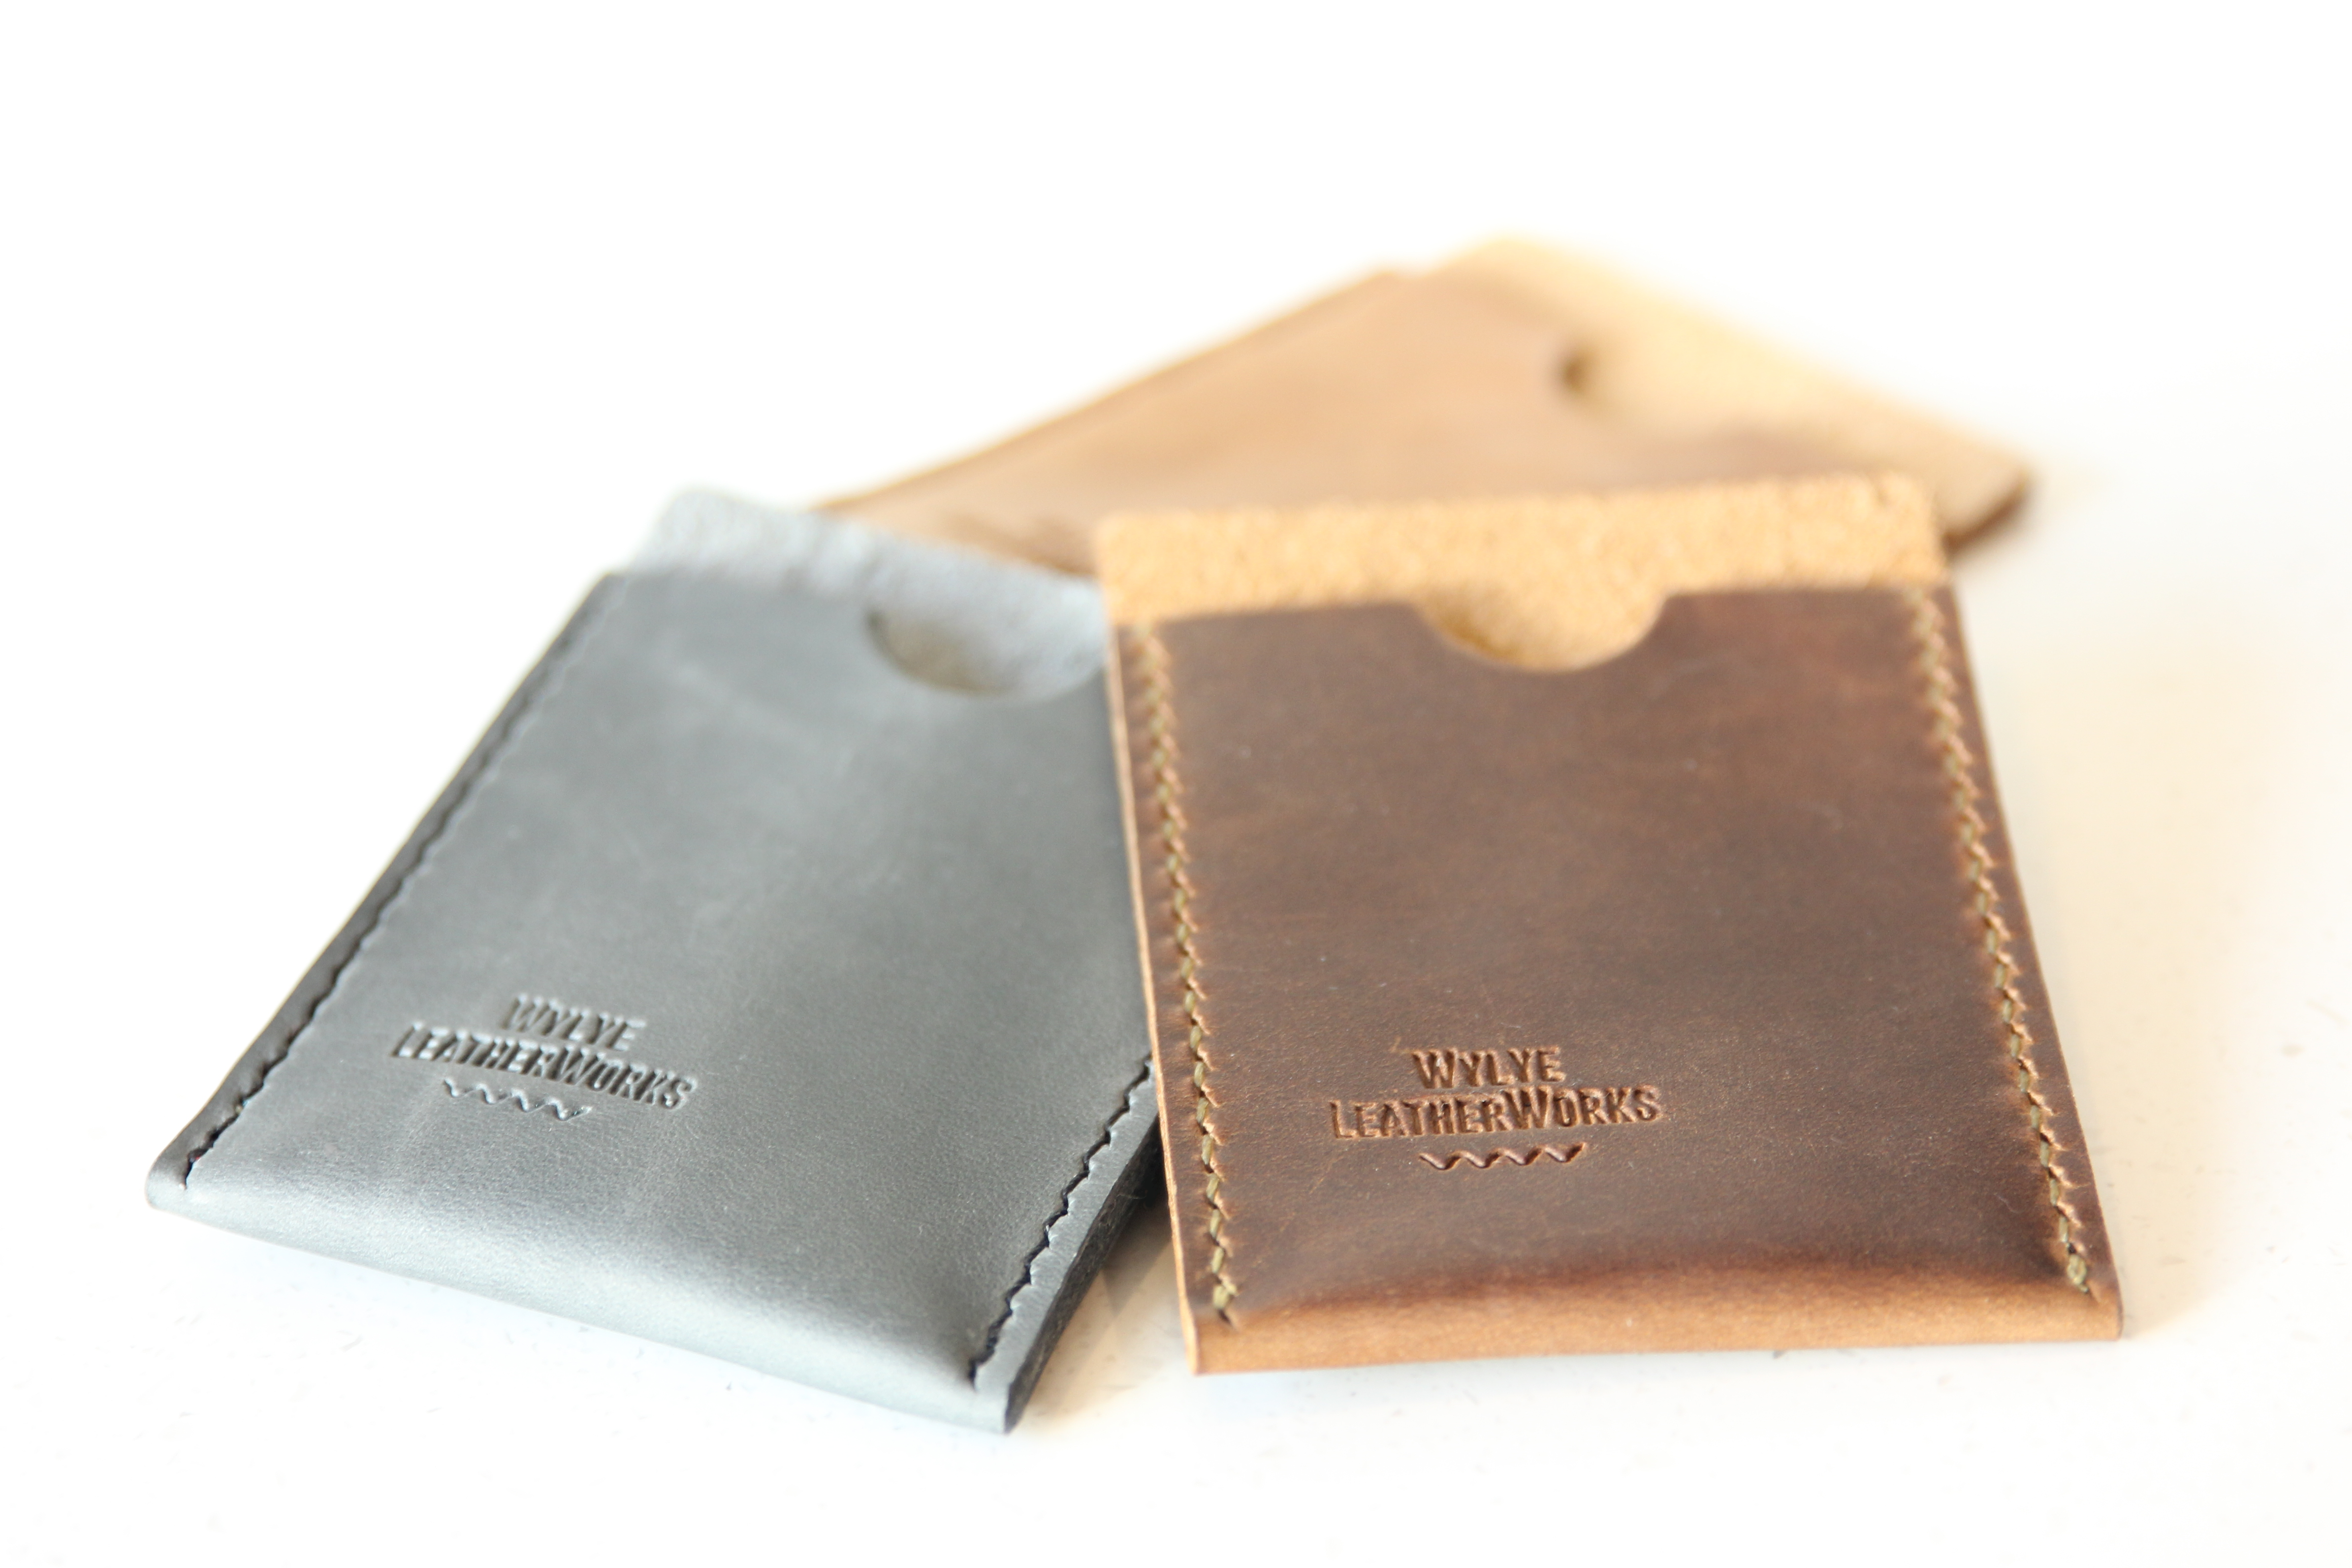 Launch of our limited edition card wallets